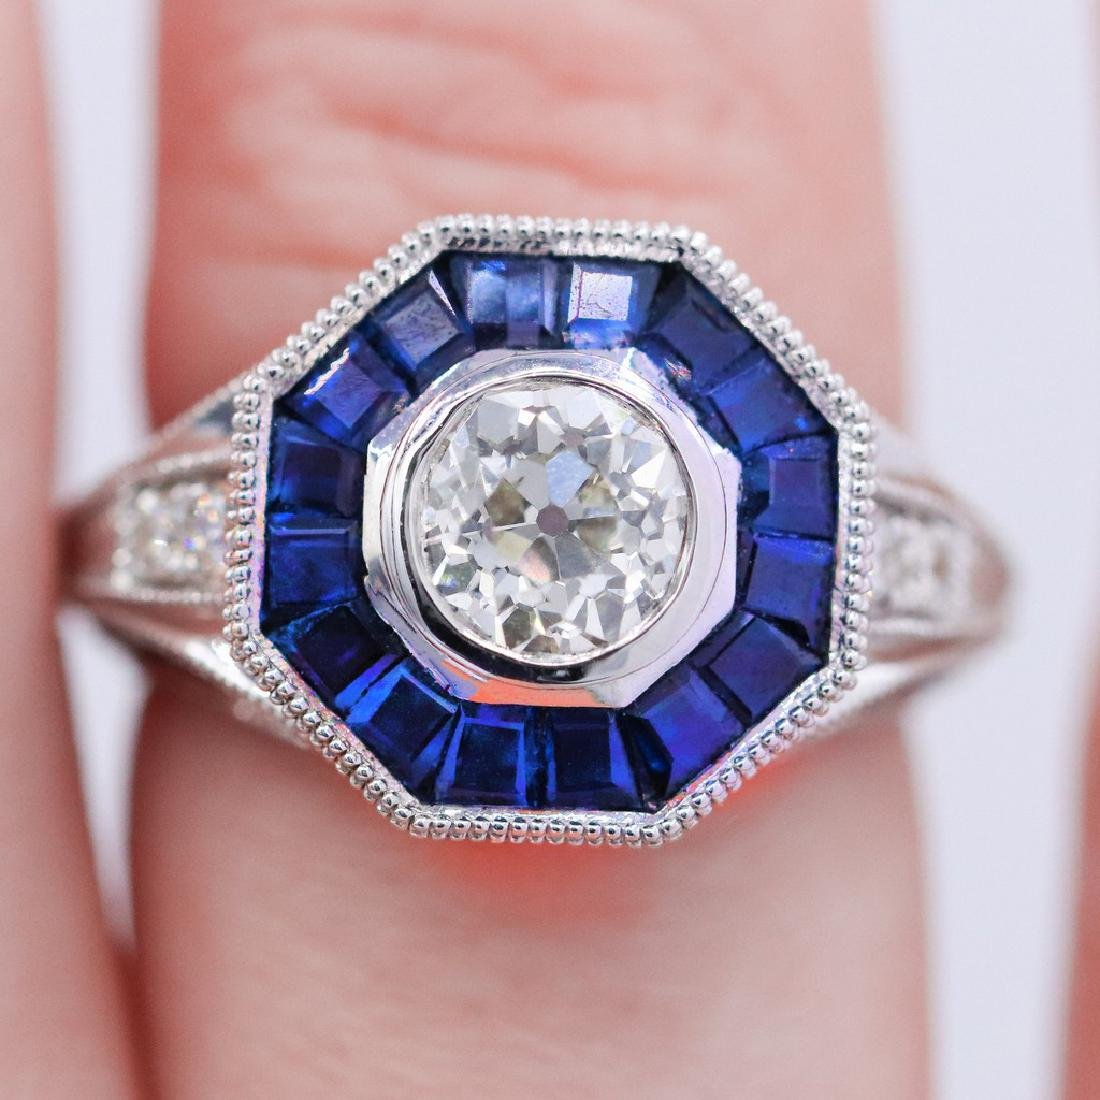 Vintage style diamond ring with 2.28ct of sapphire